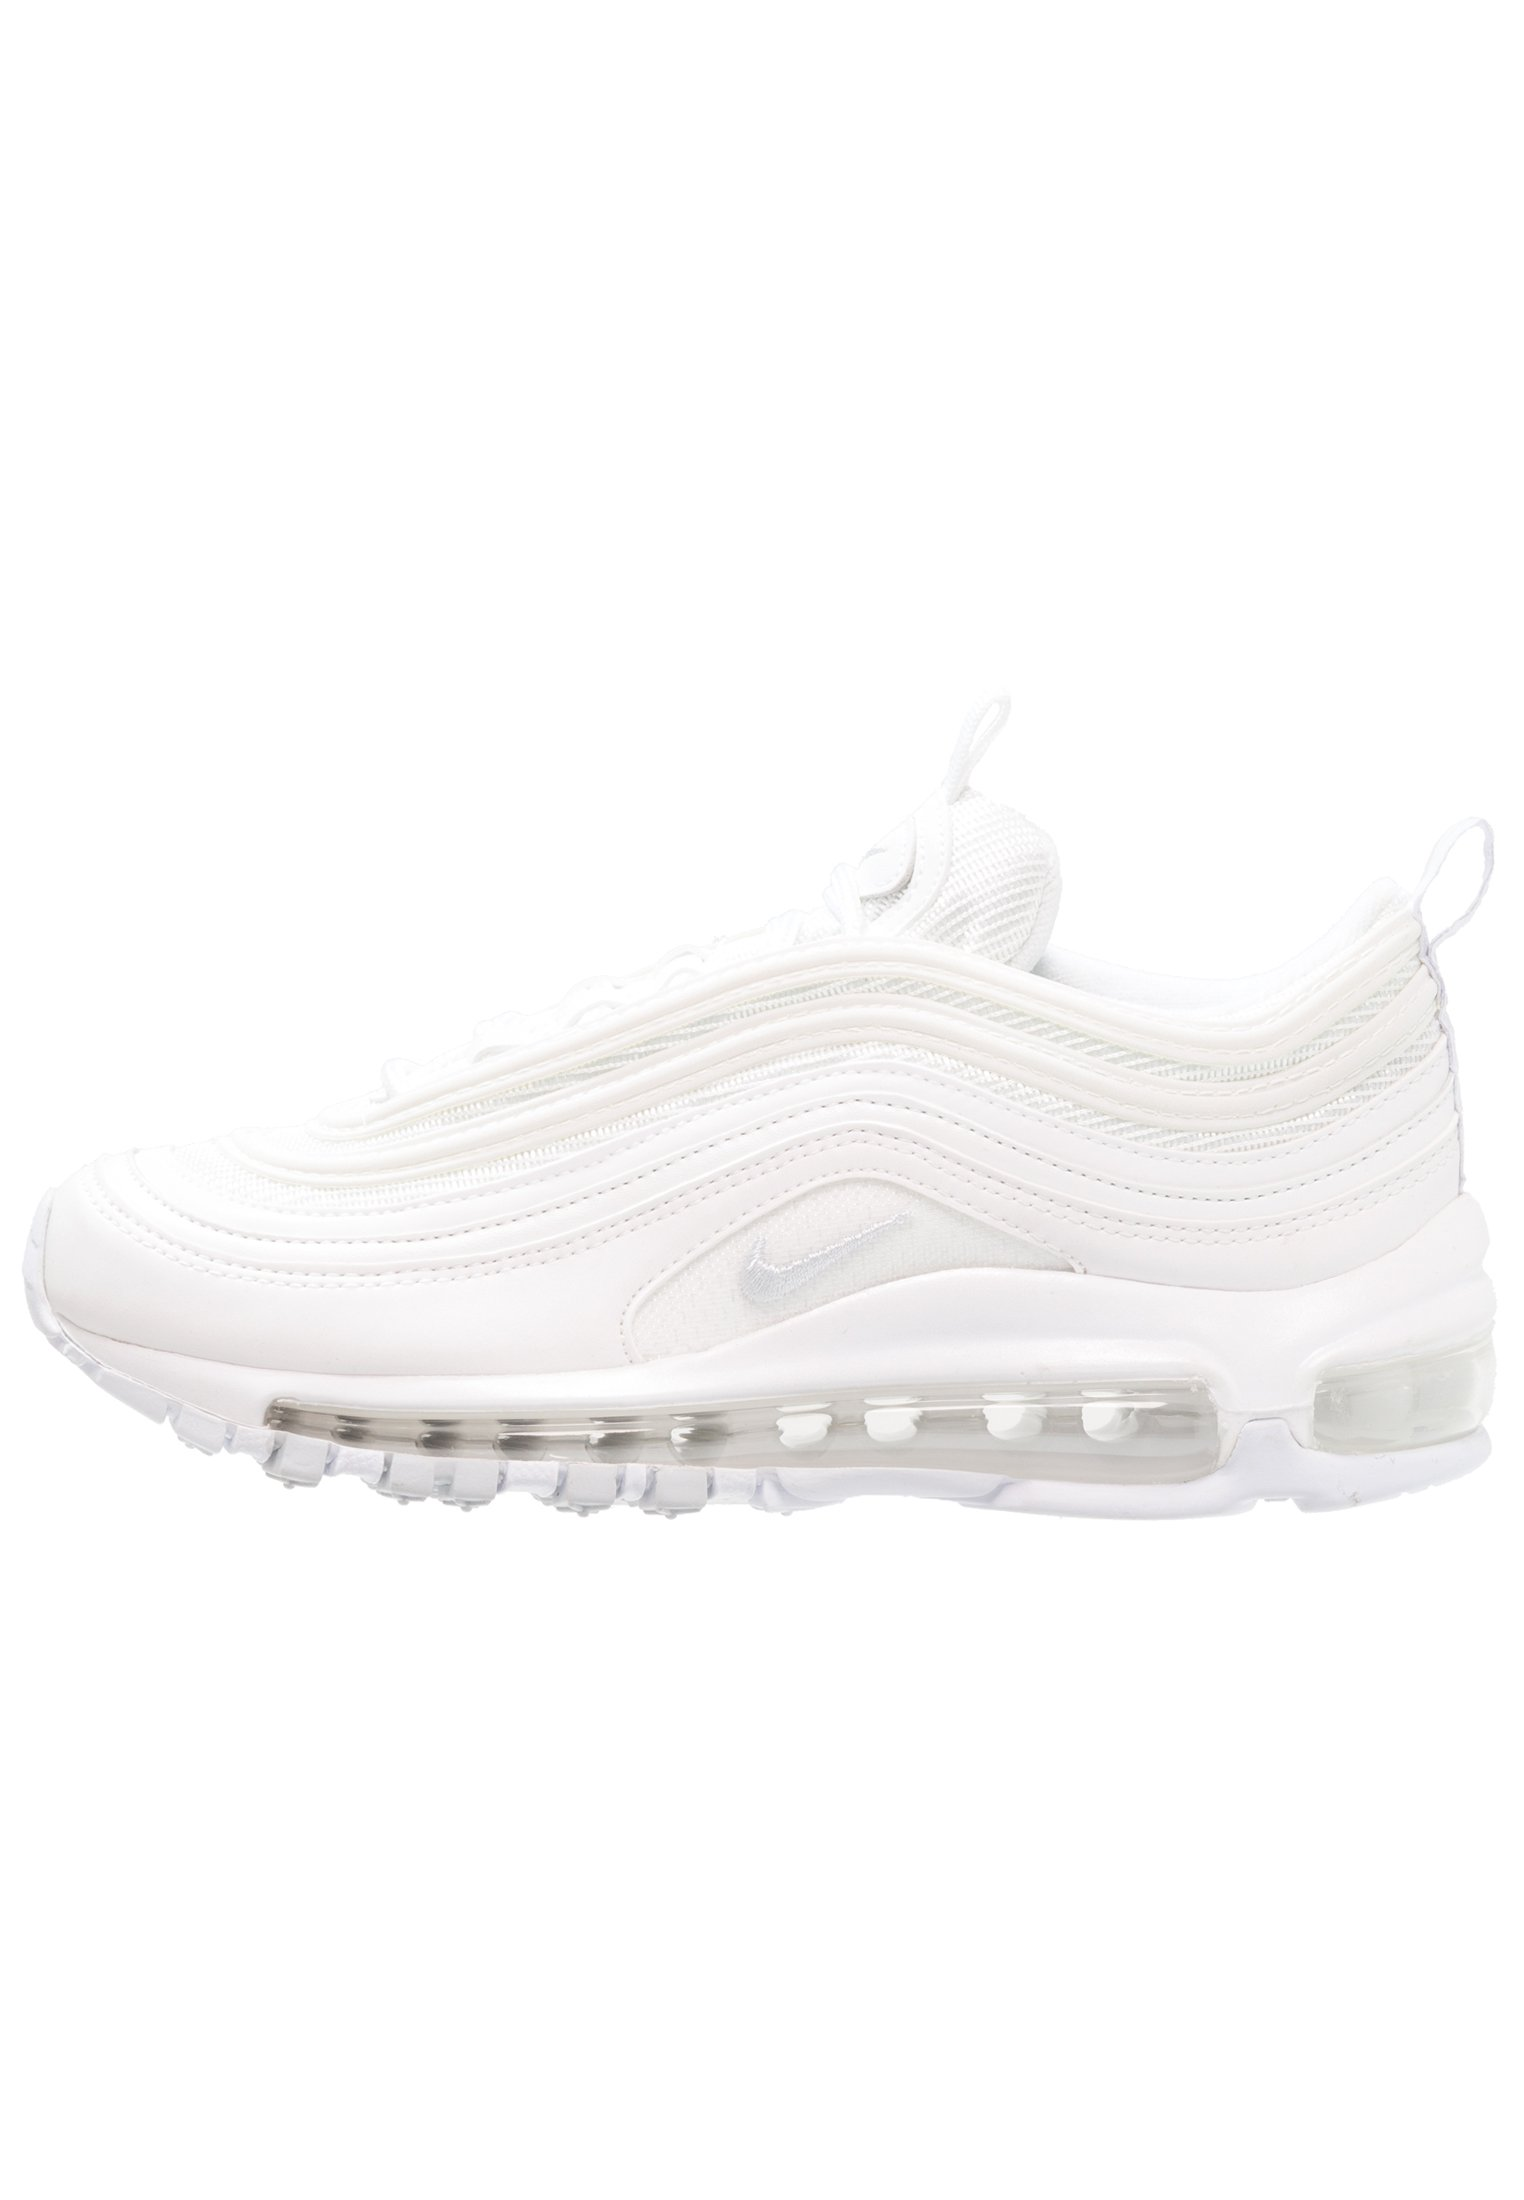 AIR MAX 97 Sneakers laag whitepure platinum